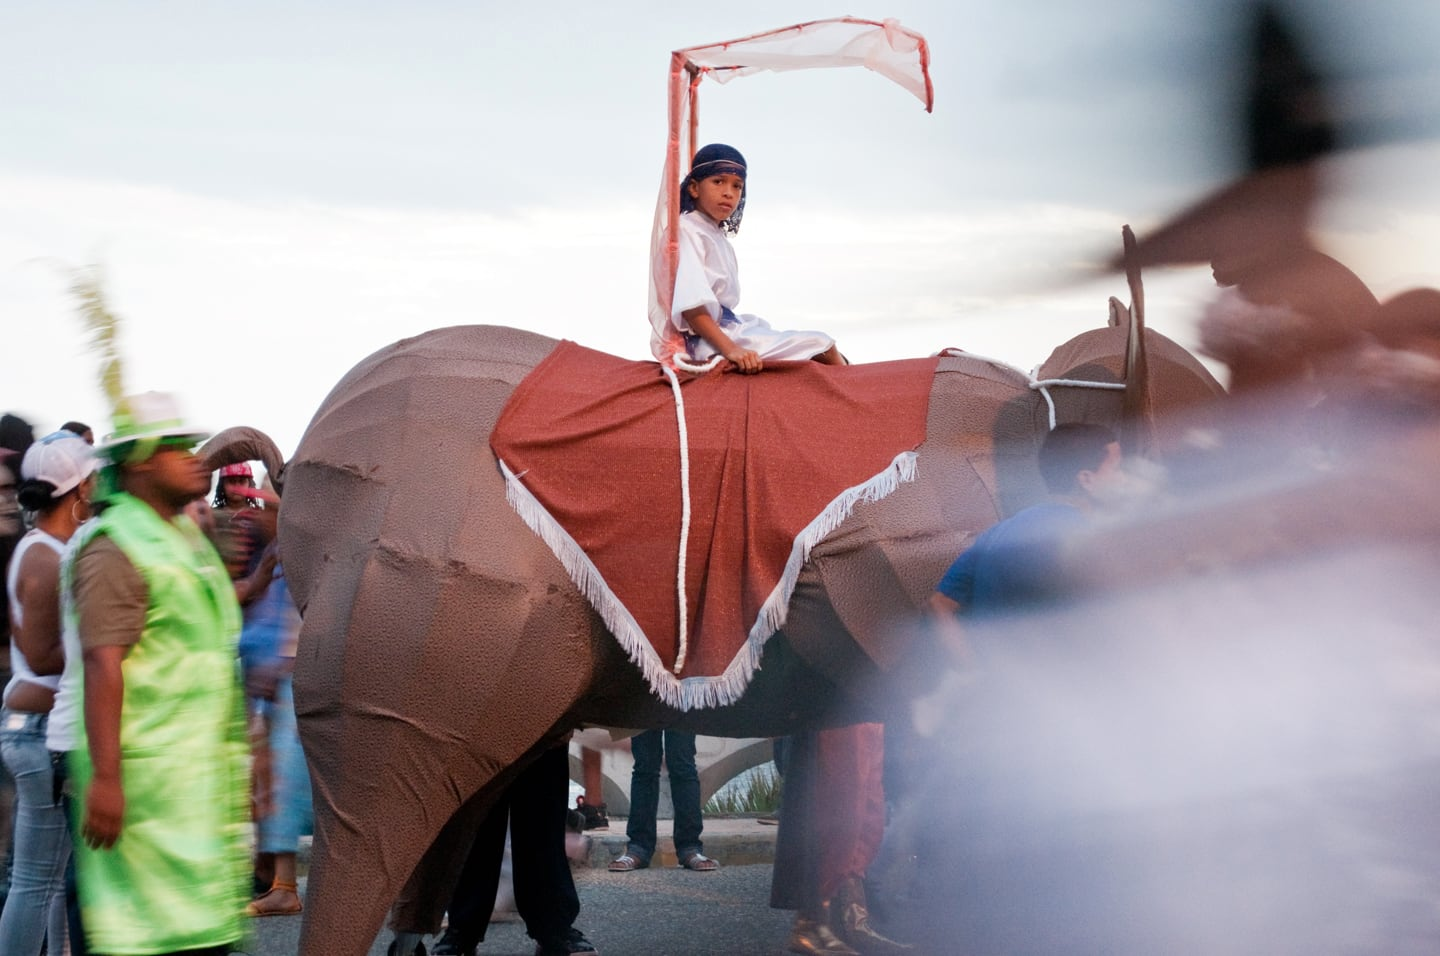 boy riding elephant in costume